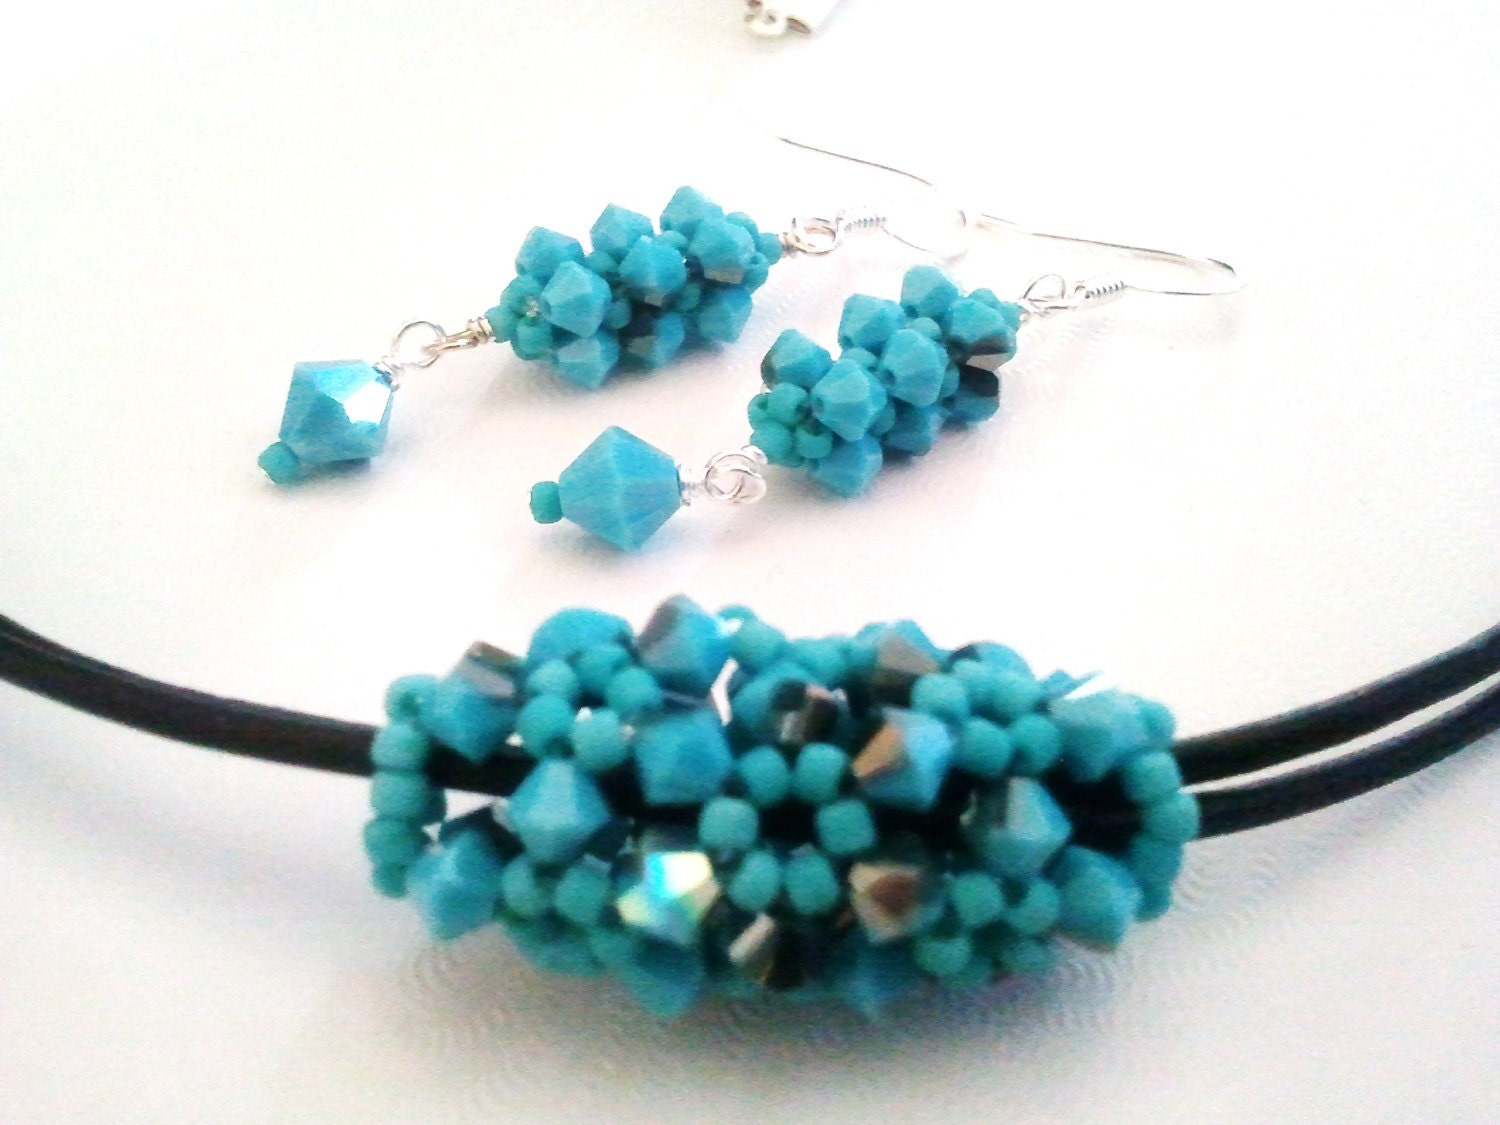 Beaded Swarovski Crystal blue Pendant, black leather Necklace & Earrings Set